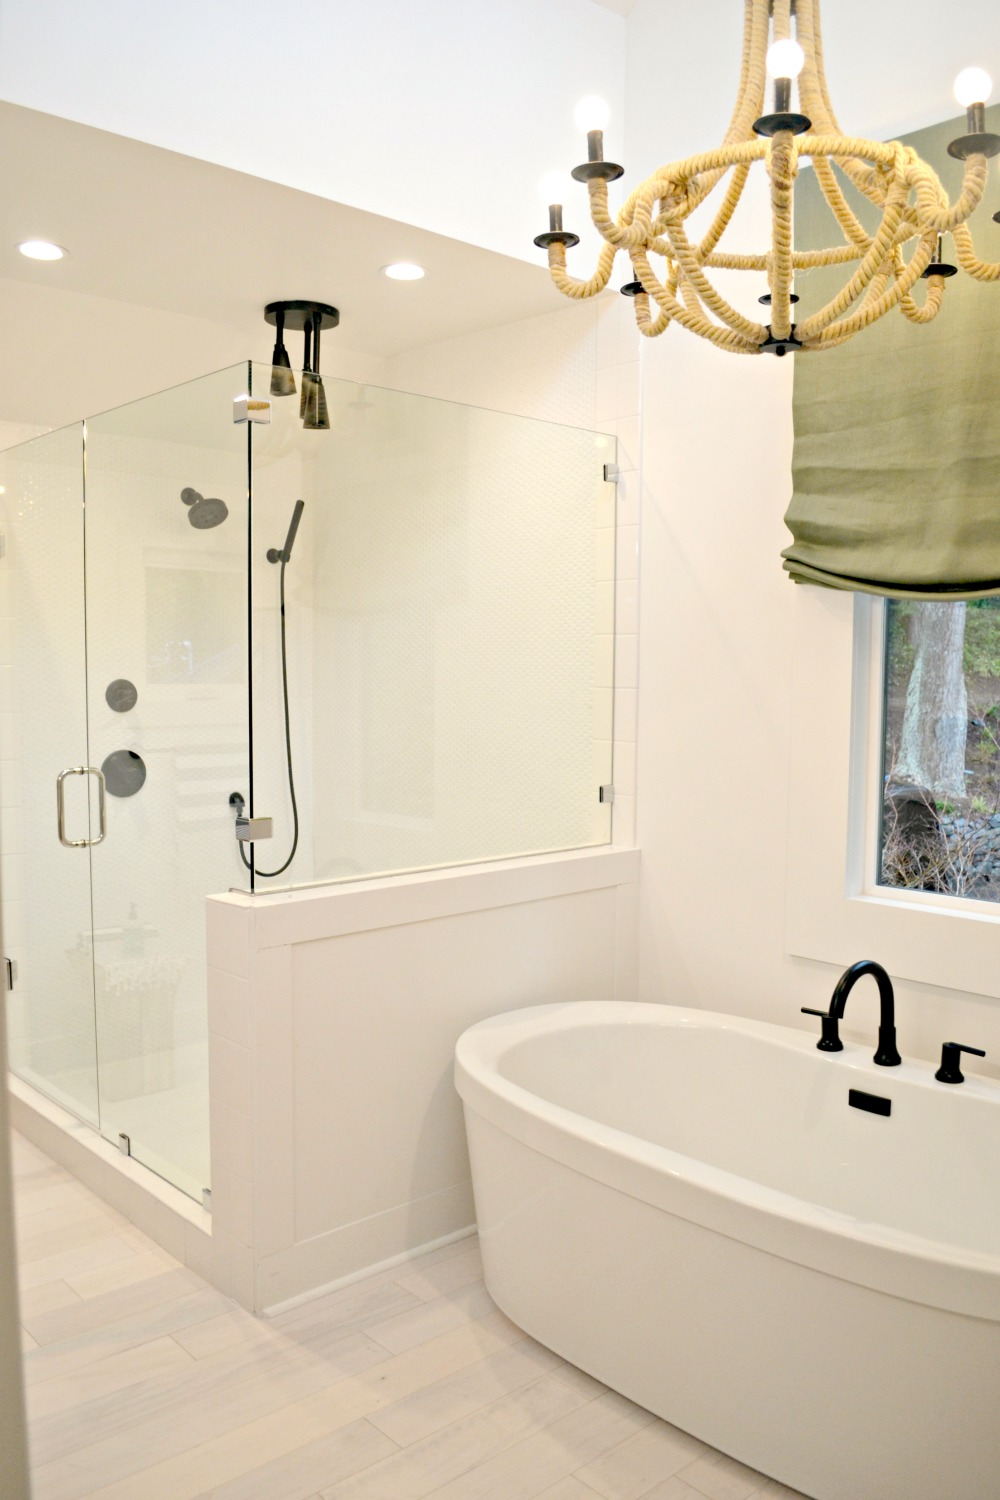 Dreams About Going To The Bathroom. That Synergy soaking tub has shown up in my dreams  I m not going to lie My Private Tour Recap of the 2018 HGTV Dream Home Rachel Teodoro